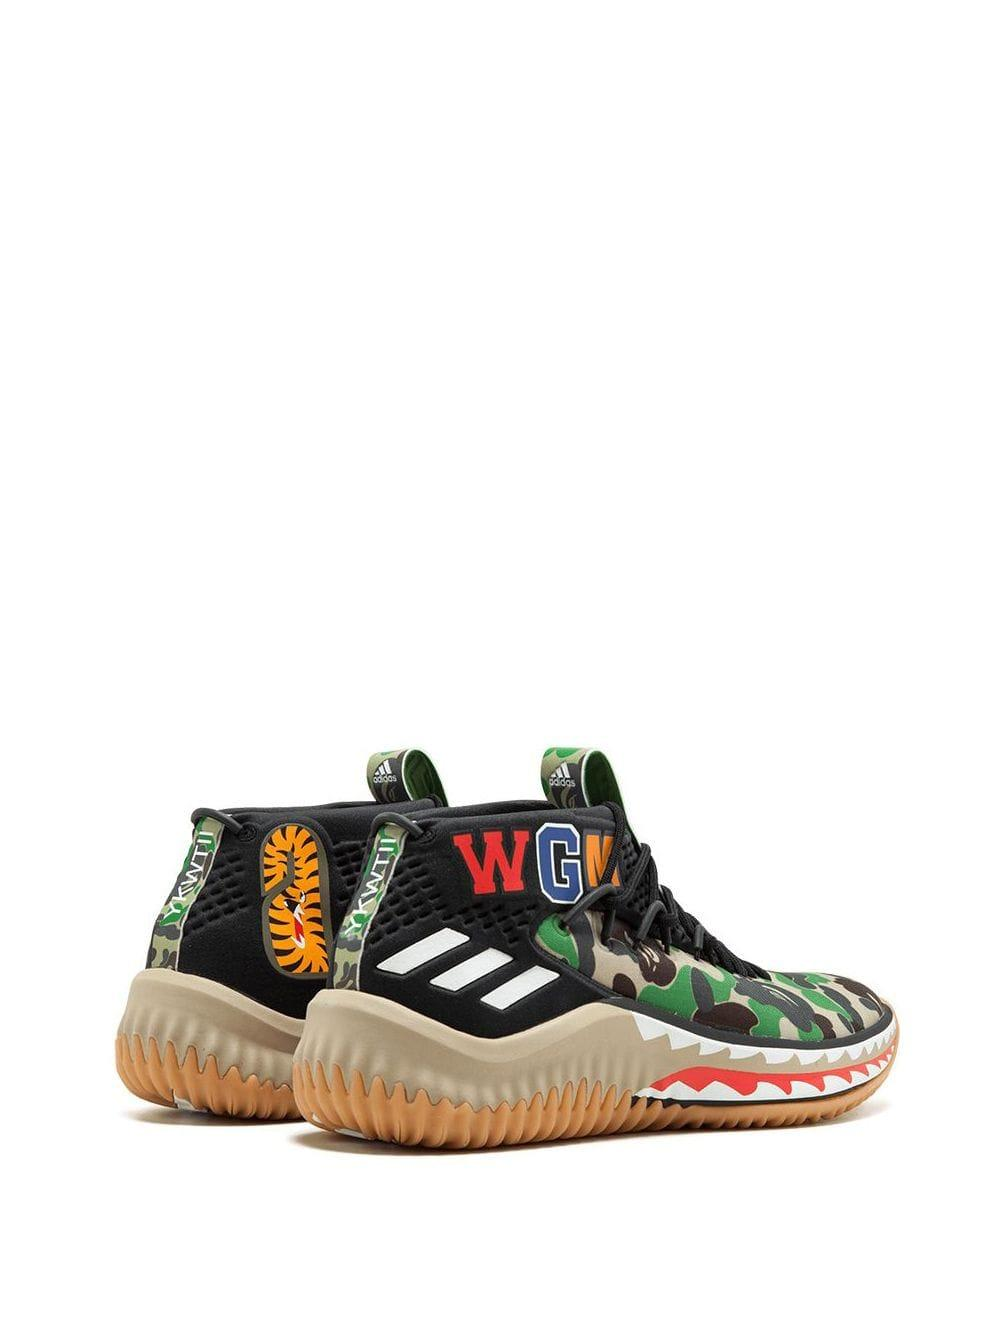 adidas Synthetic X Bape Dame 4 Sneakers in Black for Men - Lyst